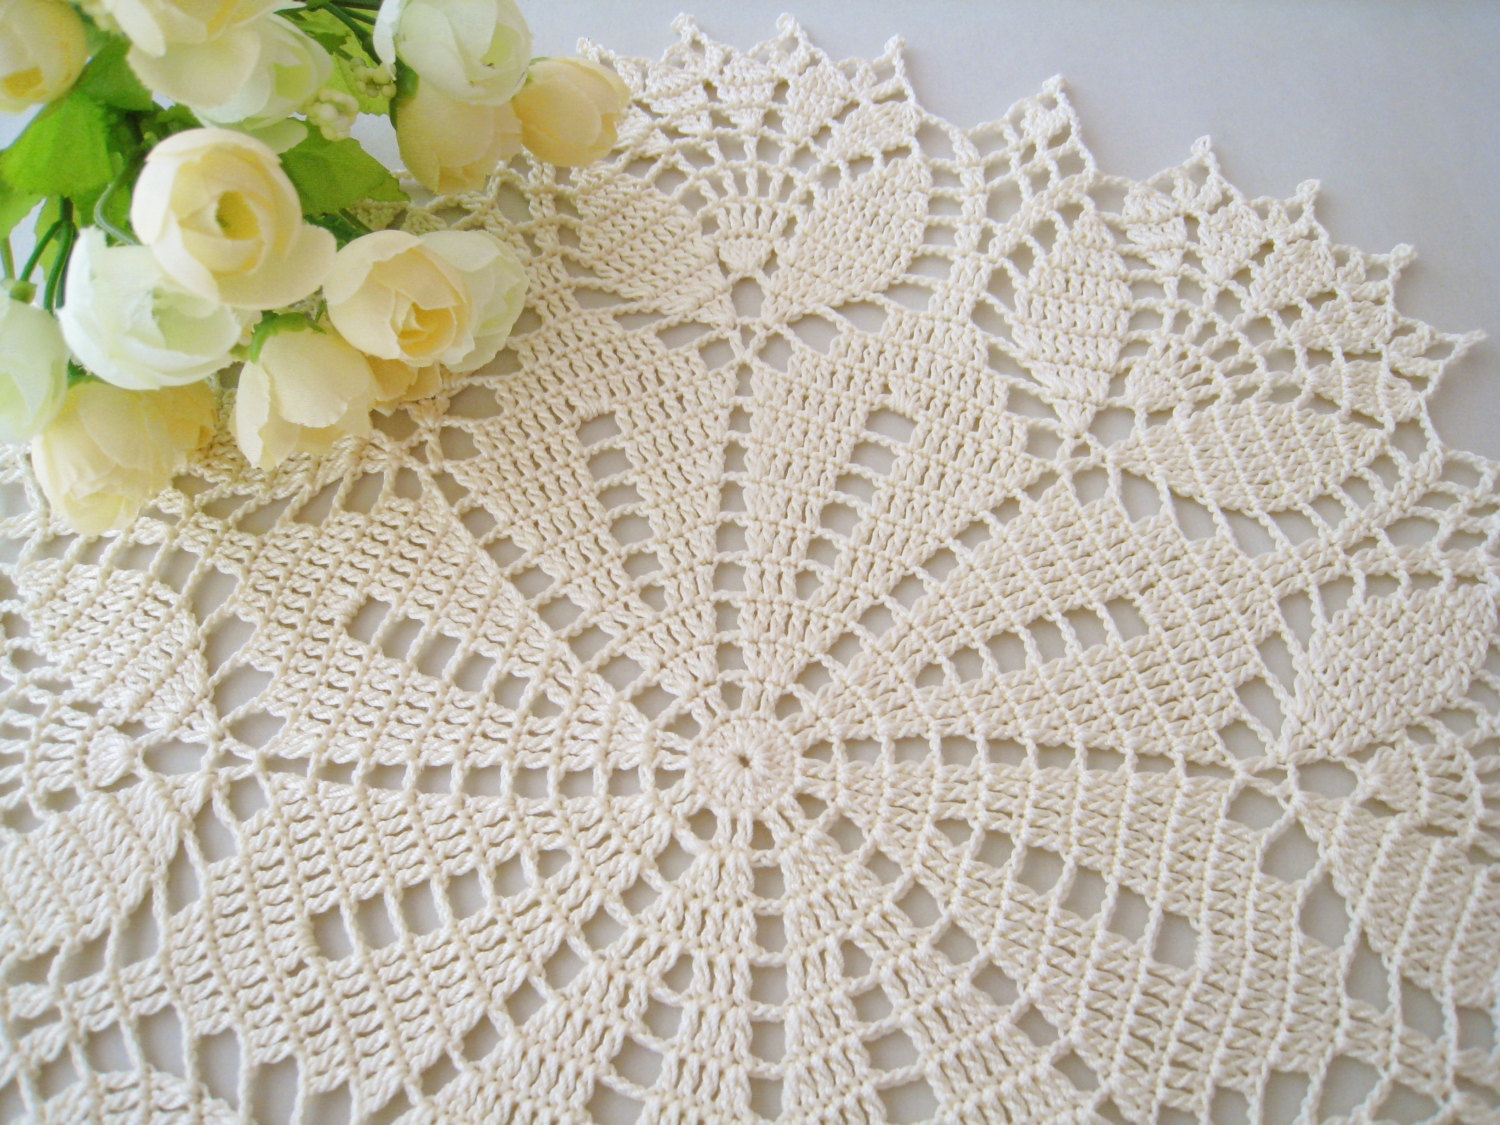 Tablecloth Target | Lace Tablecloths | Buy Lace Tablecloths